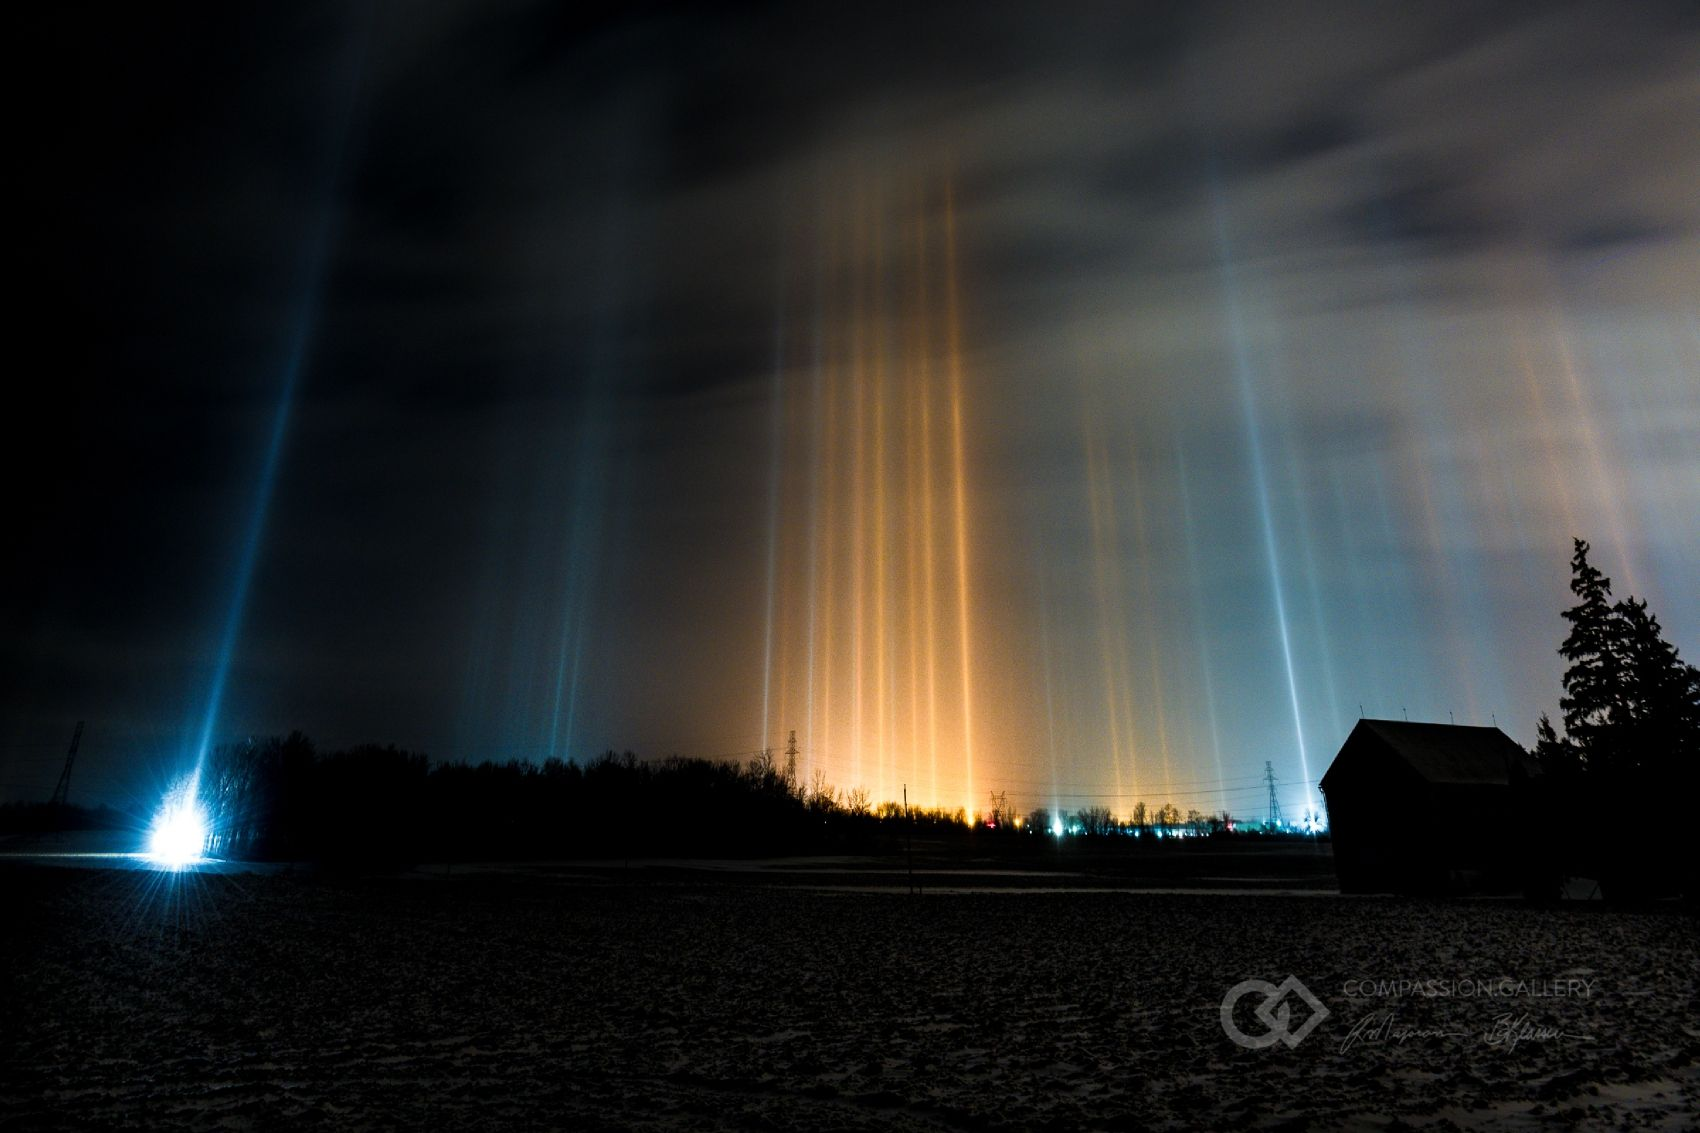 Light Pillars & Sundogs